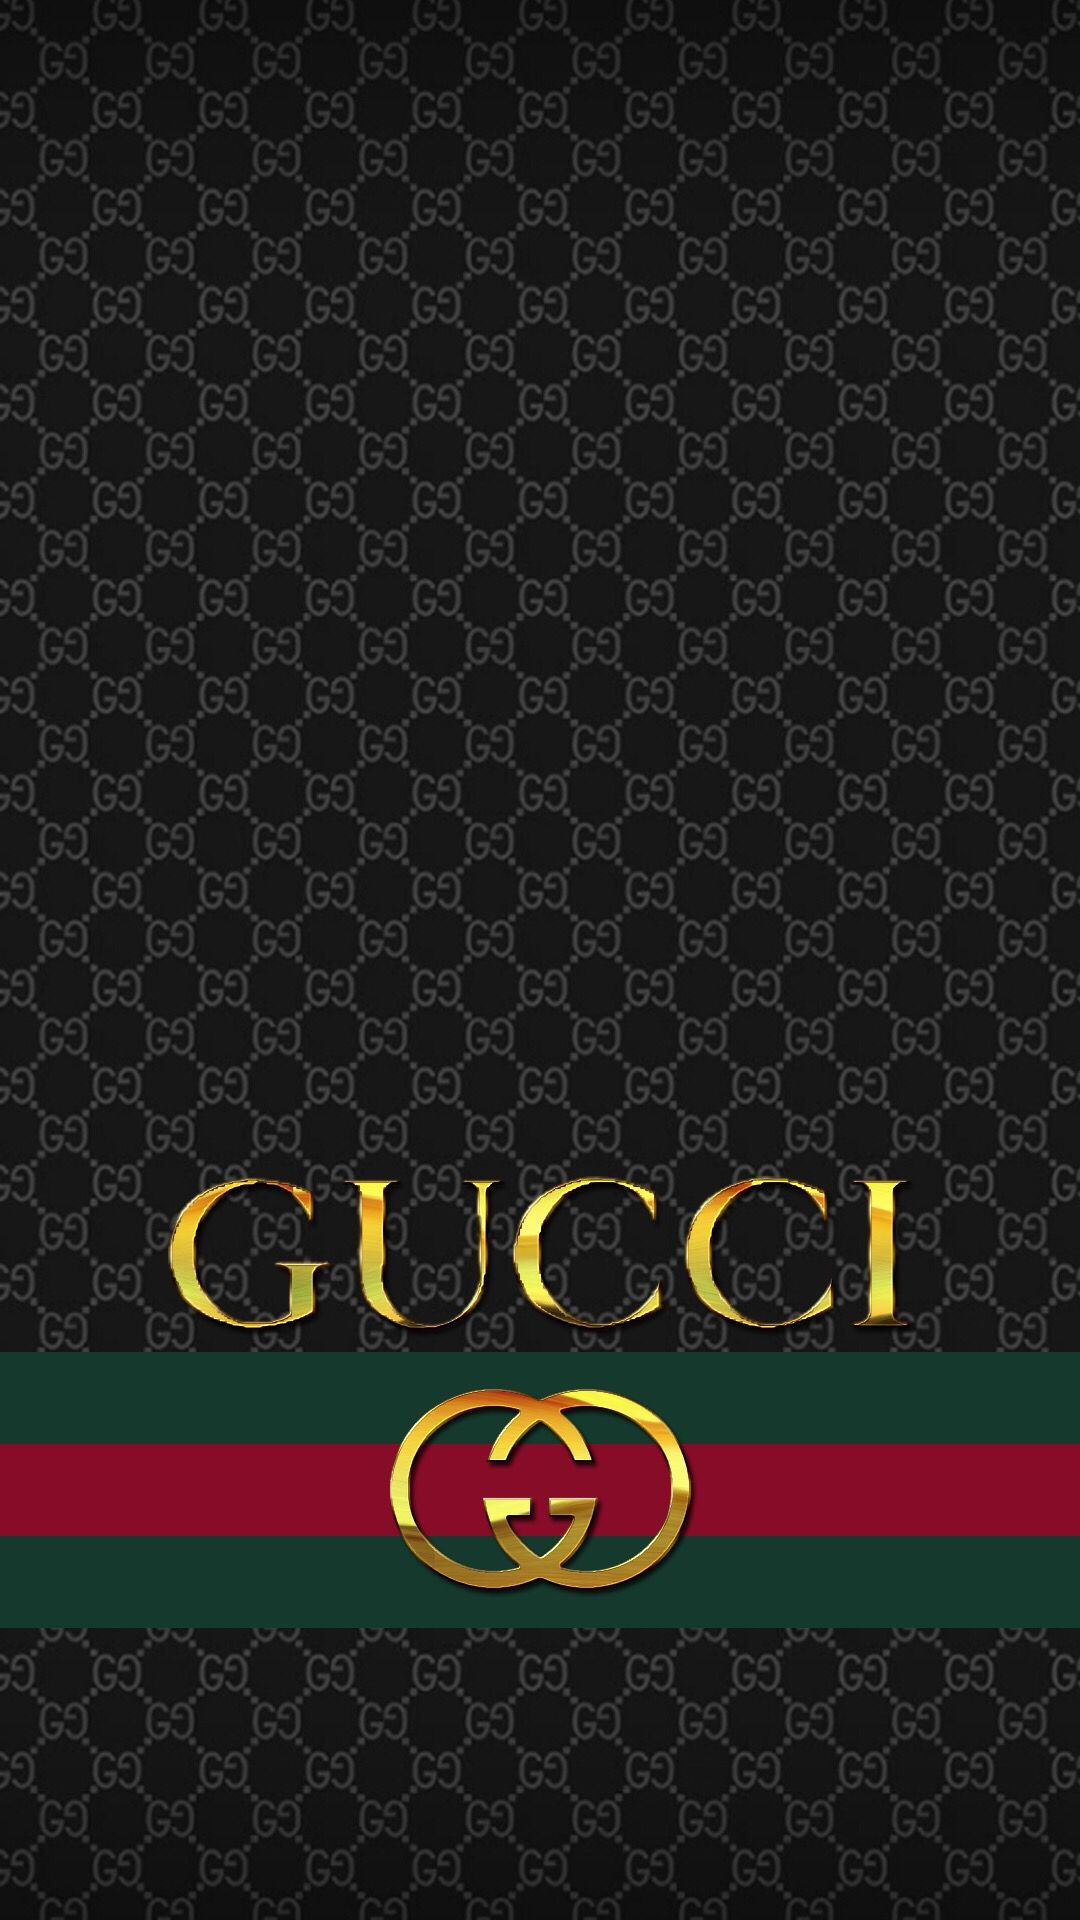 Gucci Wallpapers For Iphone Mobile Gucci Wallpaper Iphone Logo Wallpaper Hd Apple Watch Wallpaper